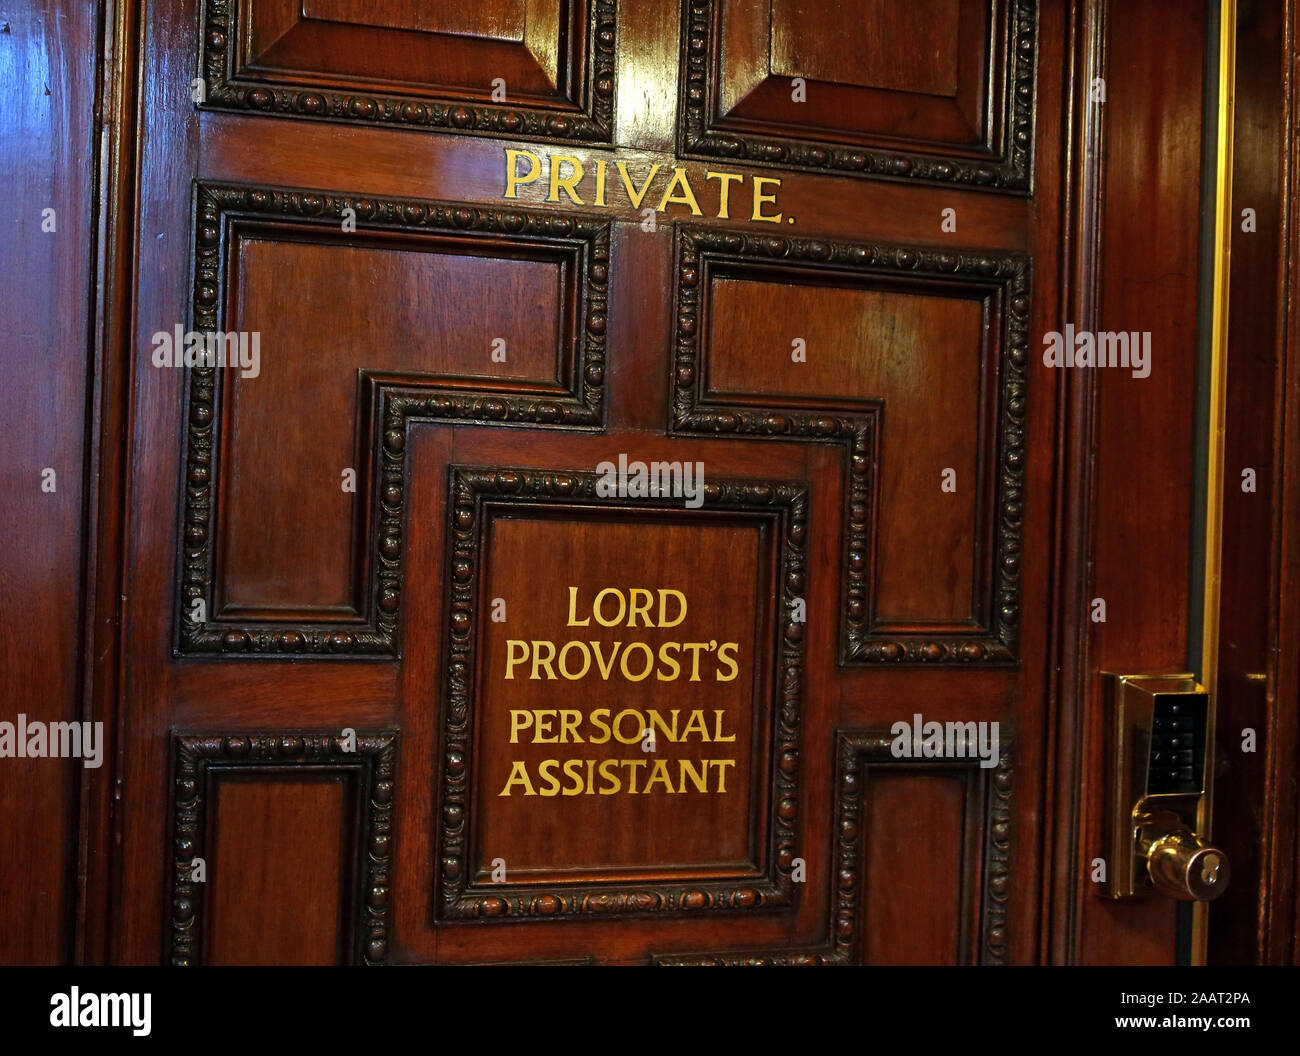 Office of Lord Provosts Personal Assistant, Glasgow City Chambers, George Square, Glasgow, Scotland,UK, G2 1AL Stock Photo